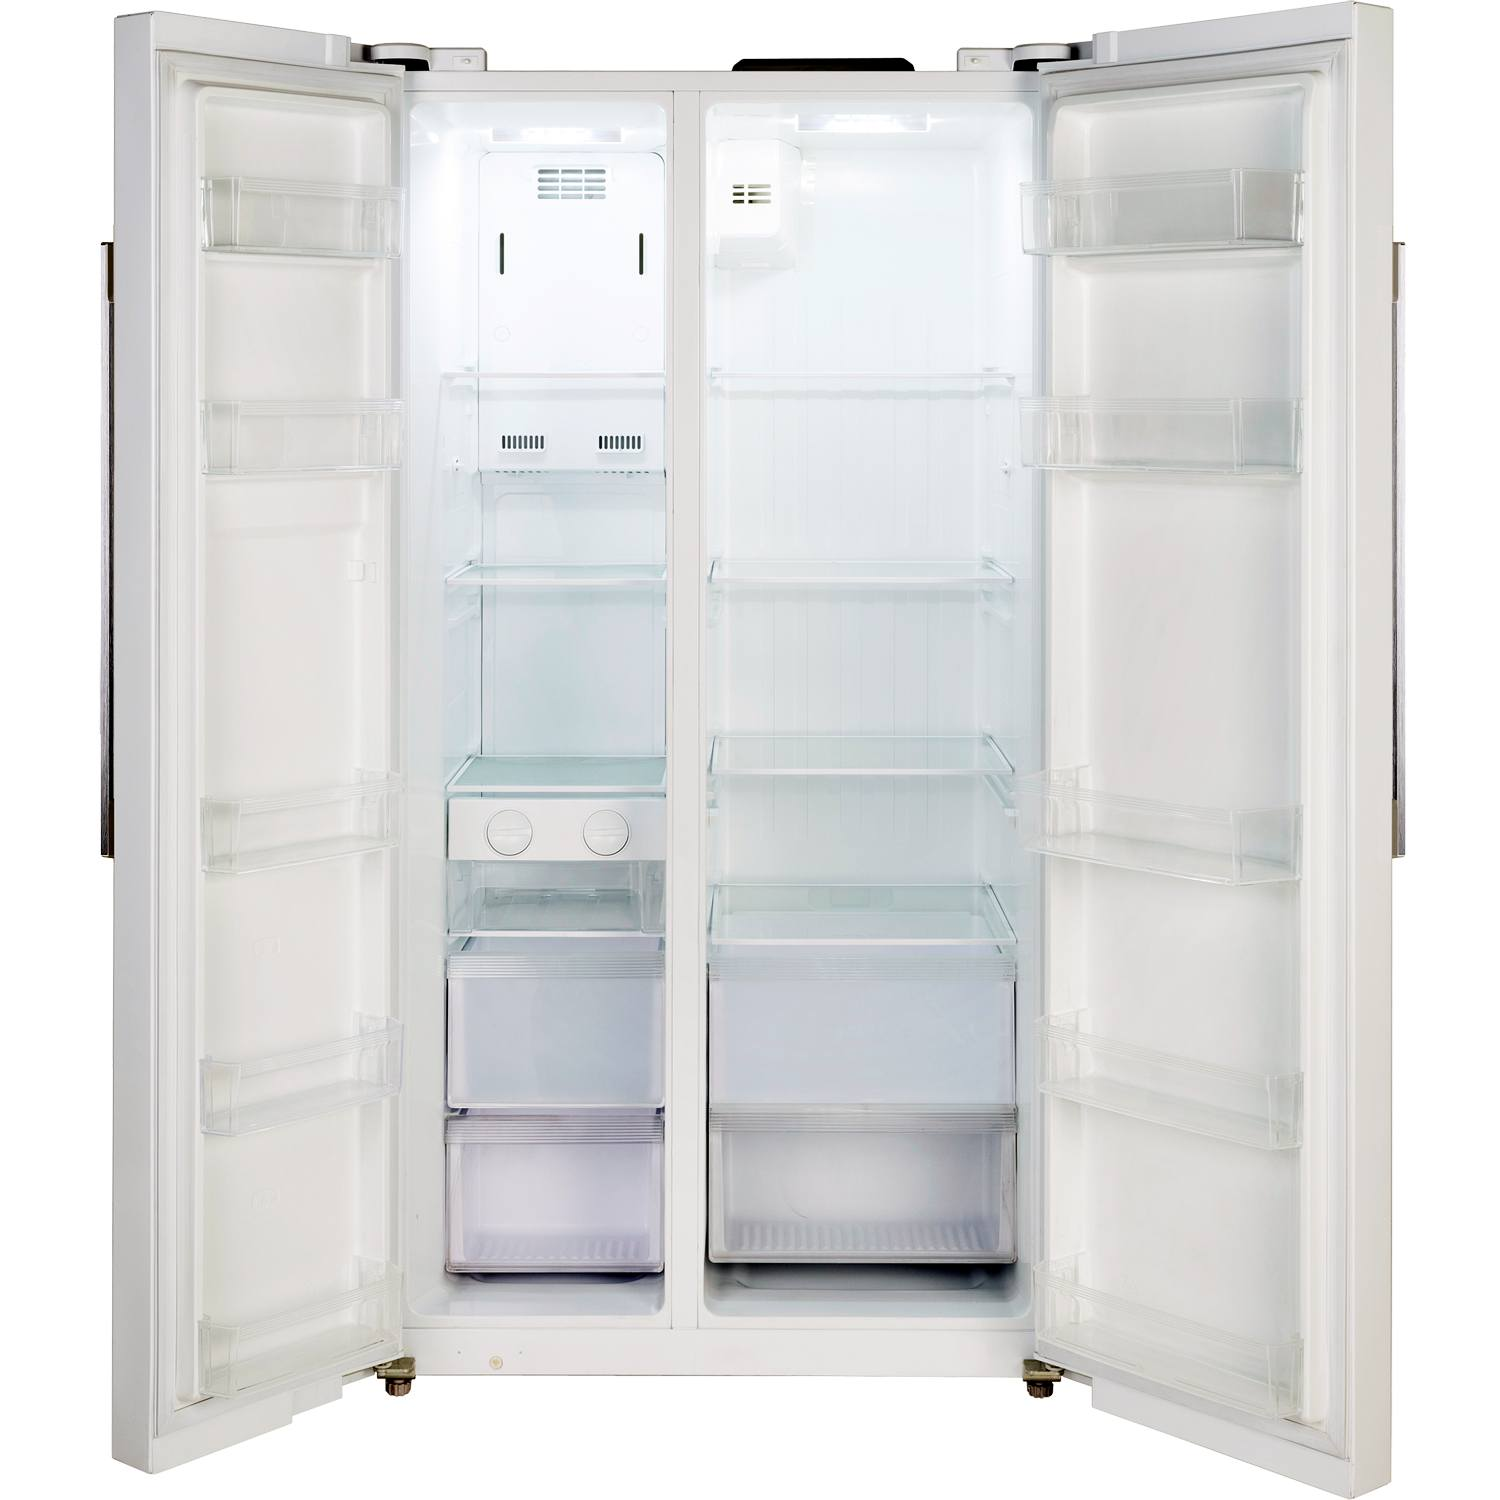 3169e3ab1fe Lec AFF90185 Side by Side Ice Dispenser Frost Free American Fridge Freezer  £599.00